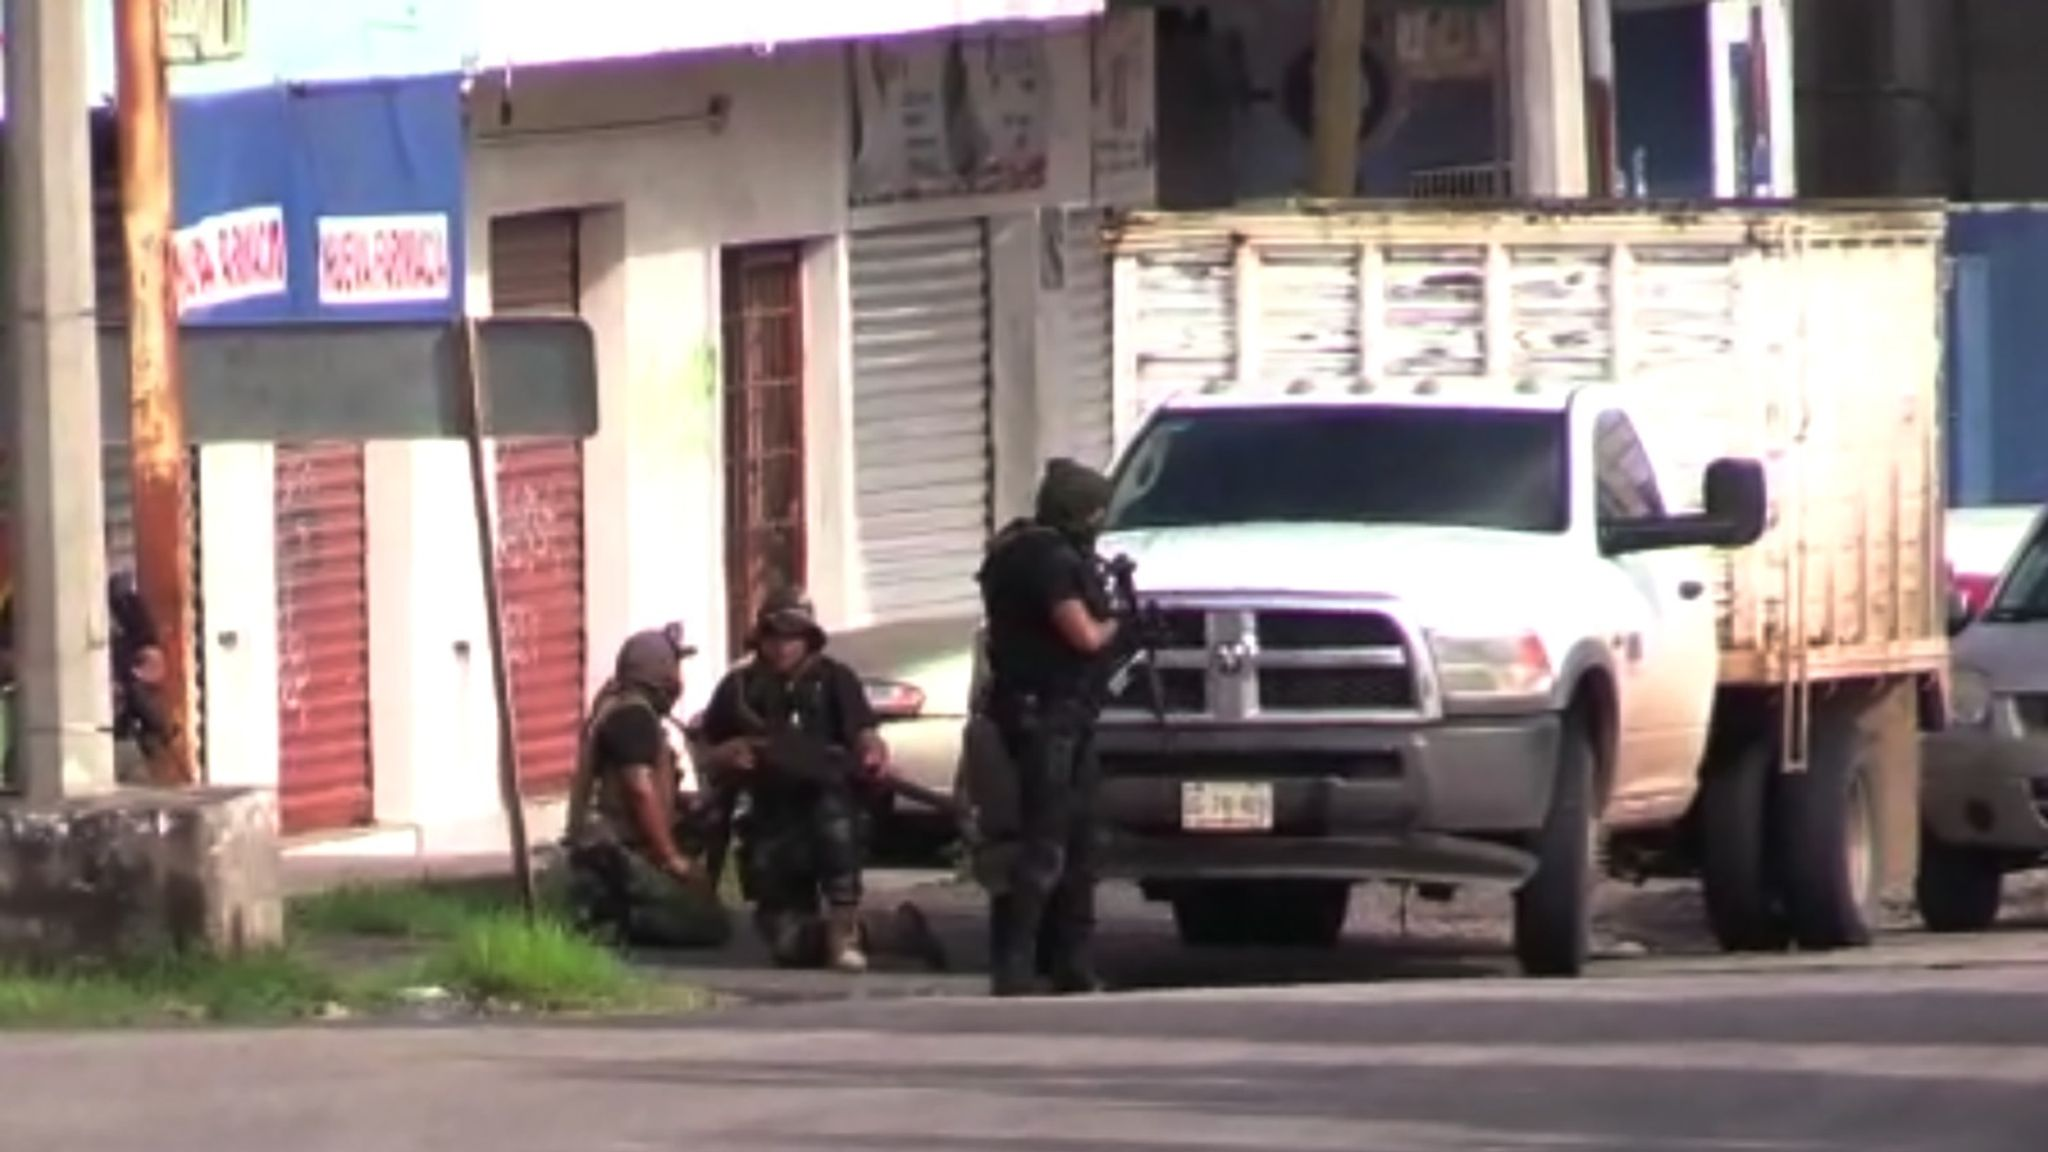 Heavily armed fighters overpower police who captured El Chapo's son